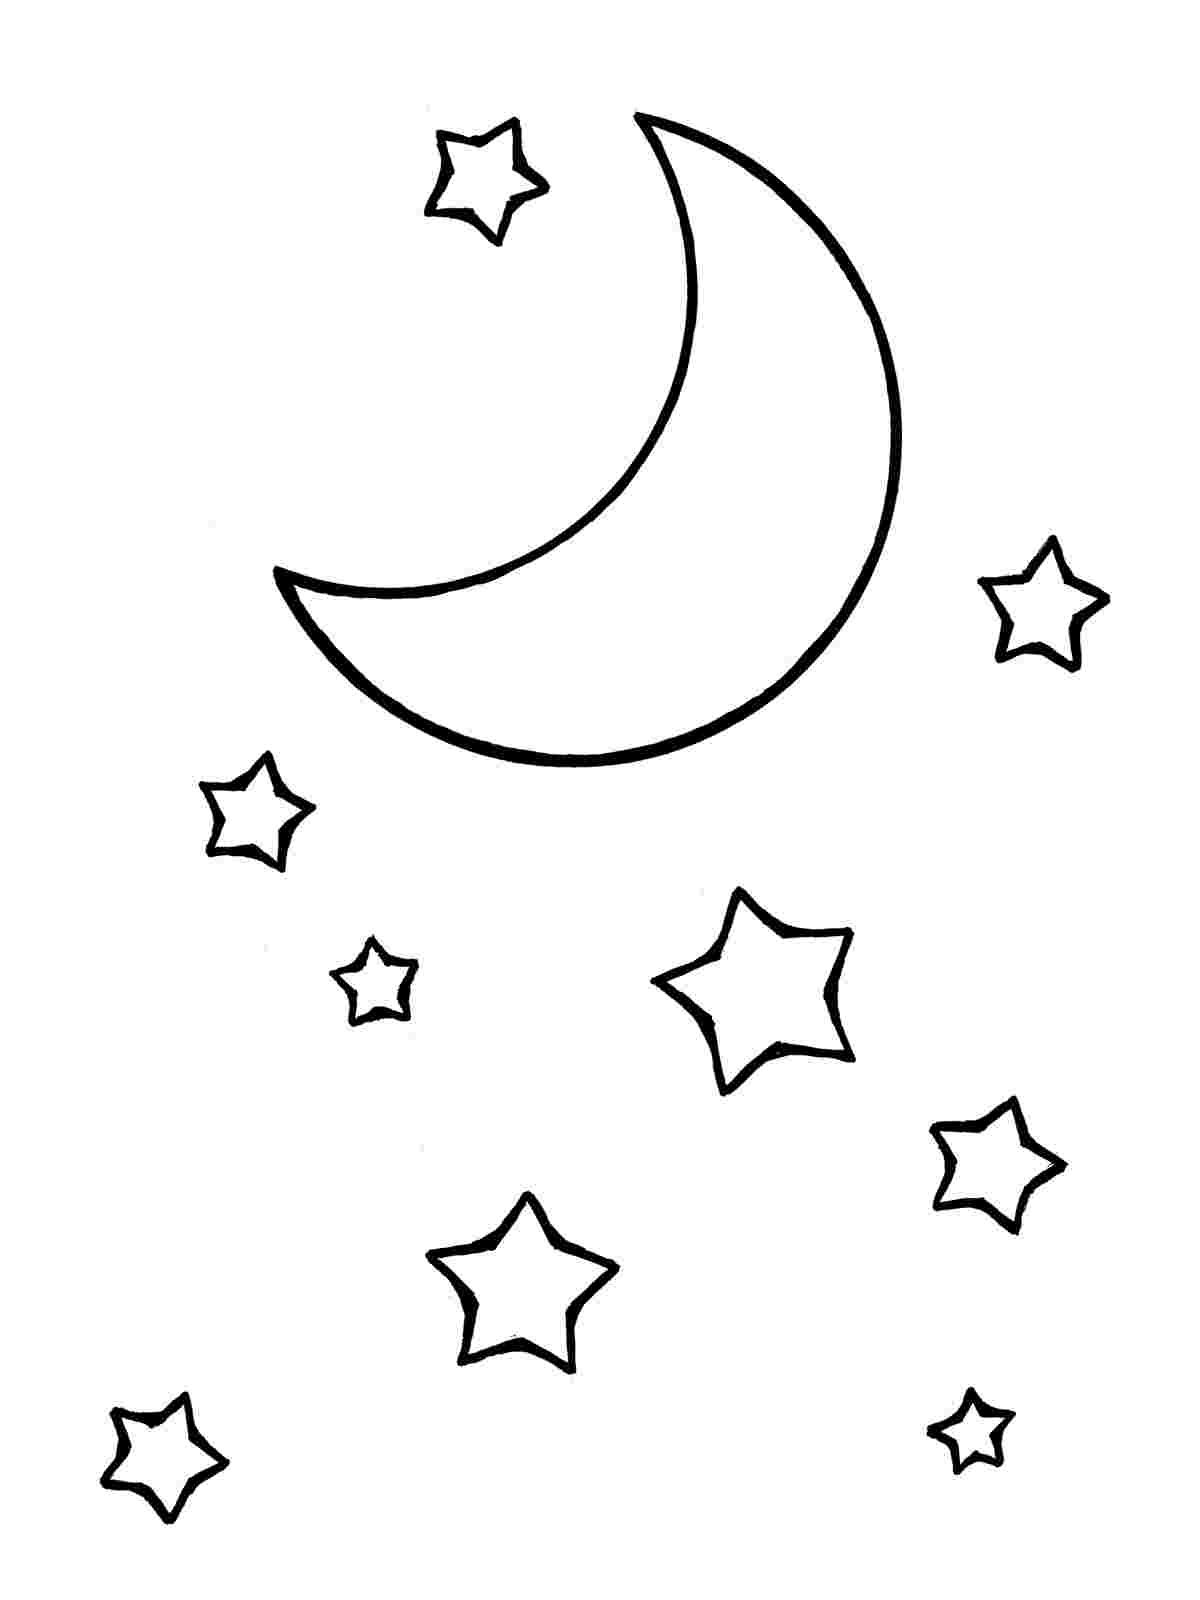 Star And Moon Coloring Pages Free In 2020 Moon Coloring Pages Star Coloring Pages Star Illustration